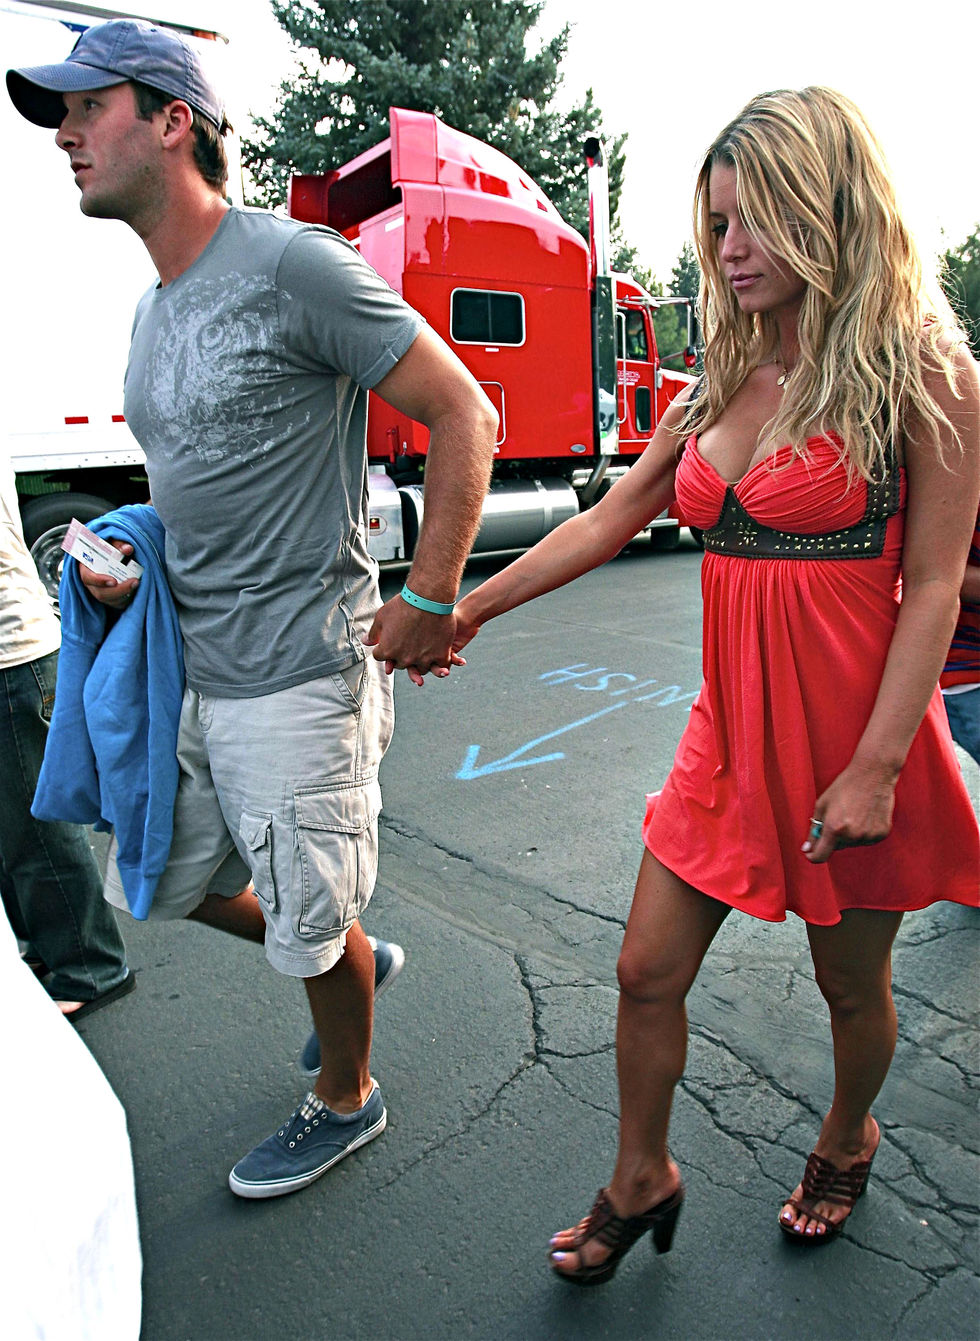 jessica-simpson-cleavage-candids-at-the-heart-concert-in-lake-tahoe-05